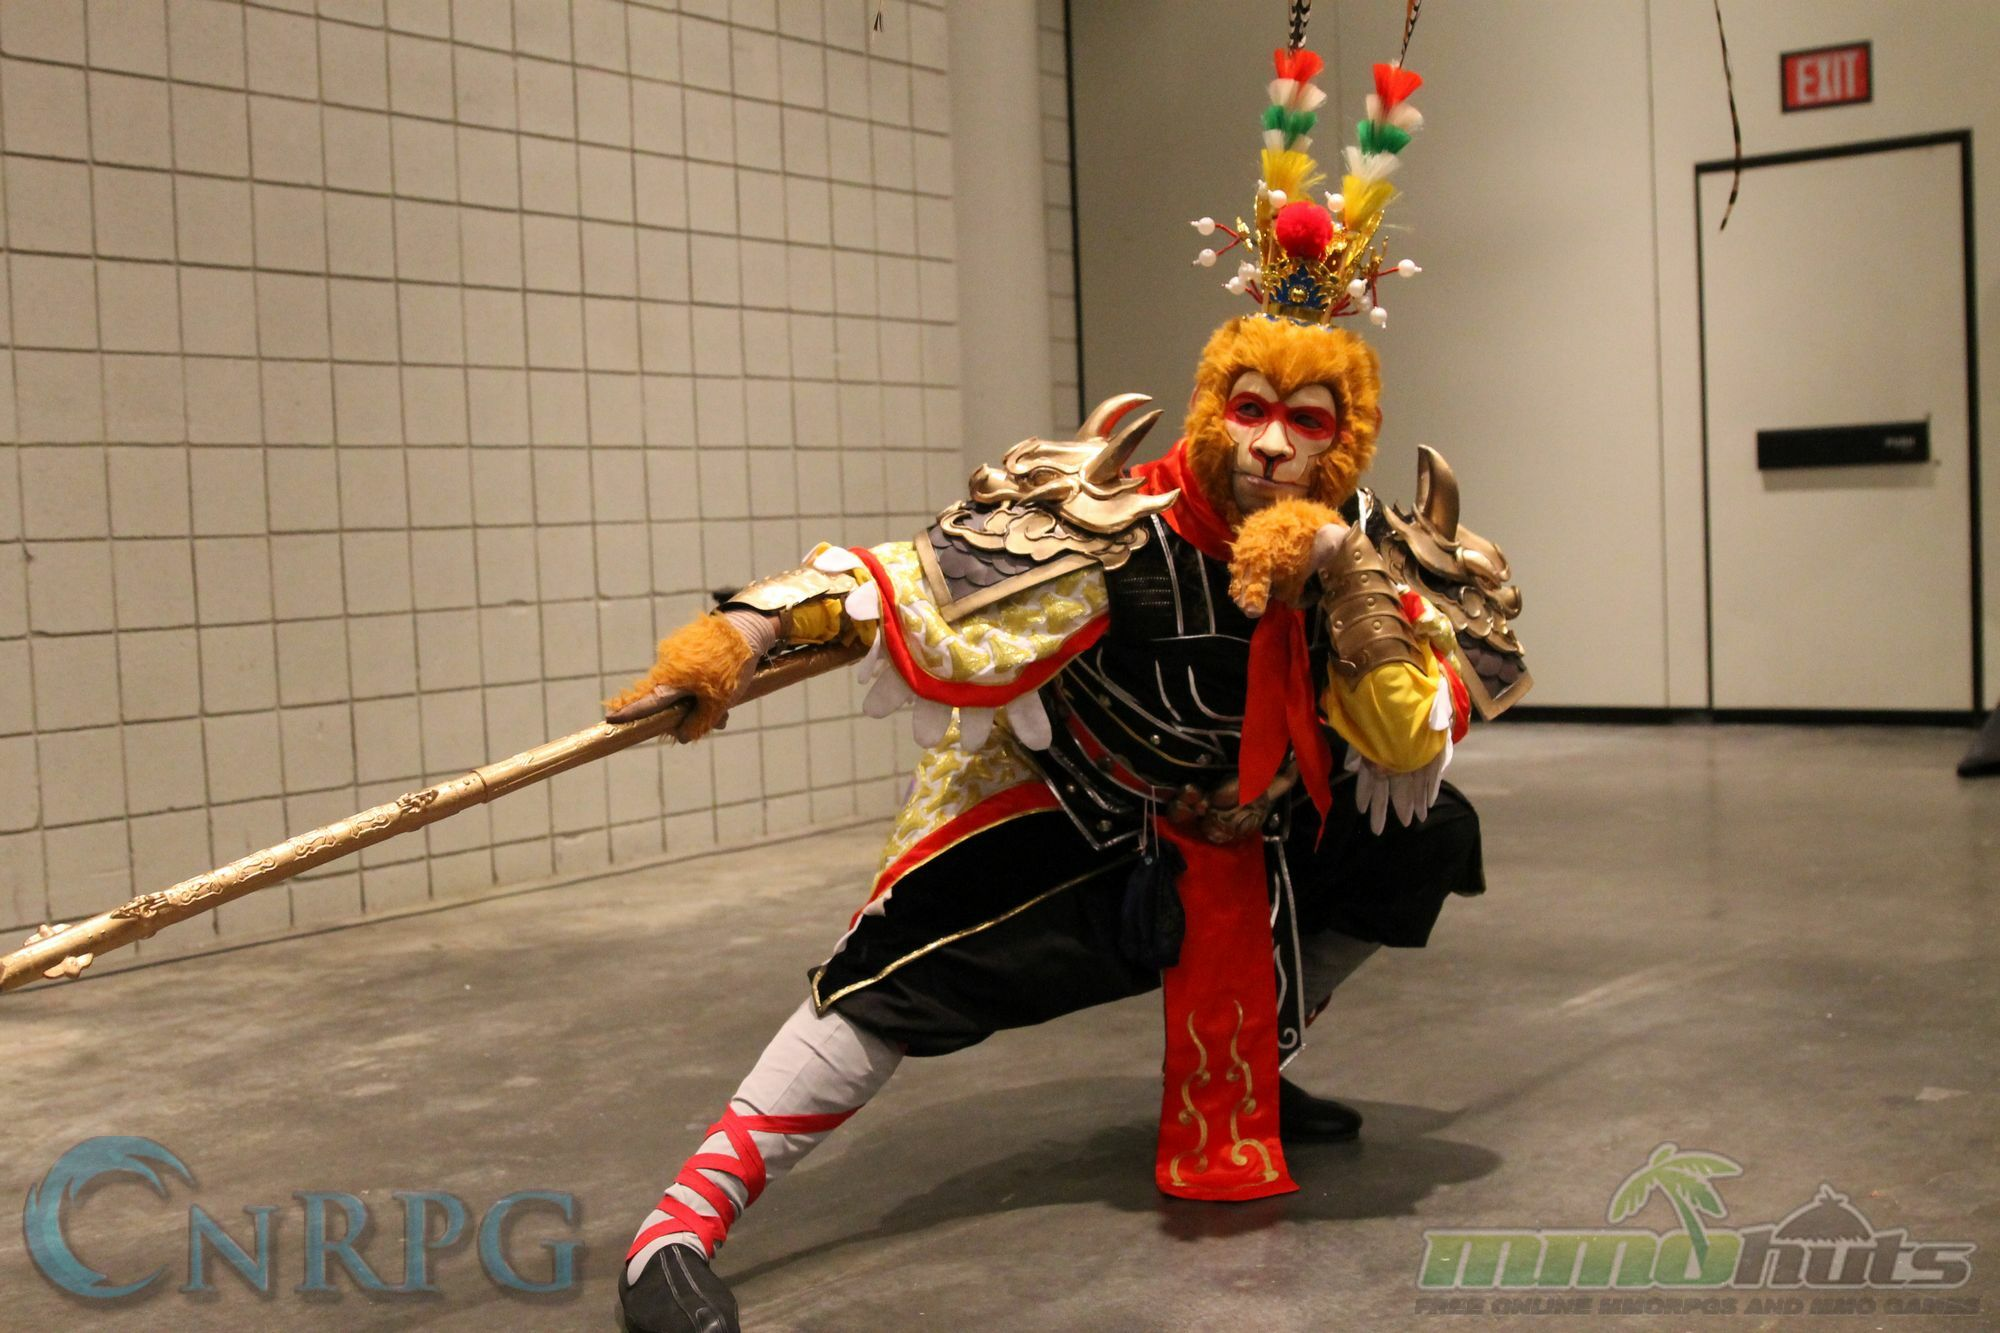 NYCC 2015 Day 3 WuKong Cosplay